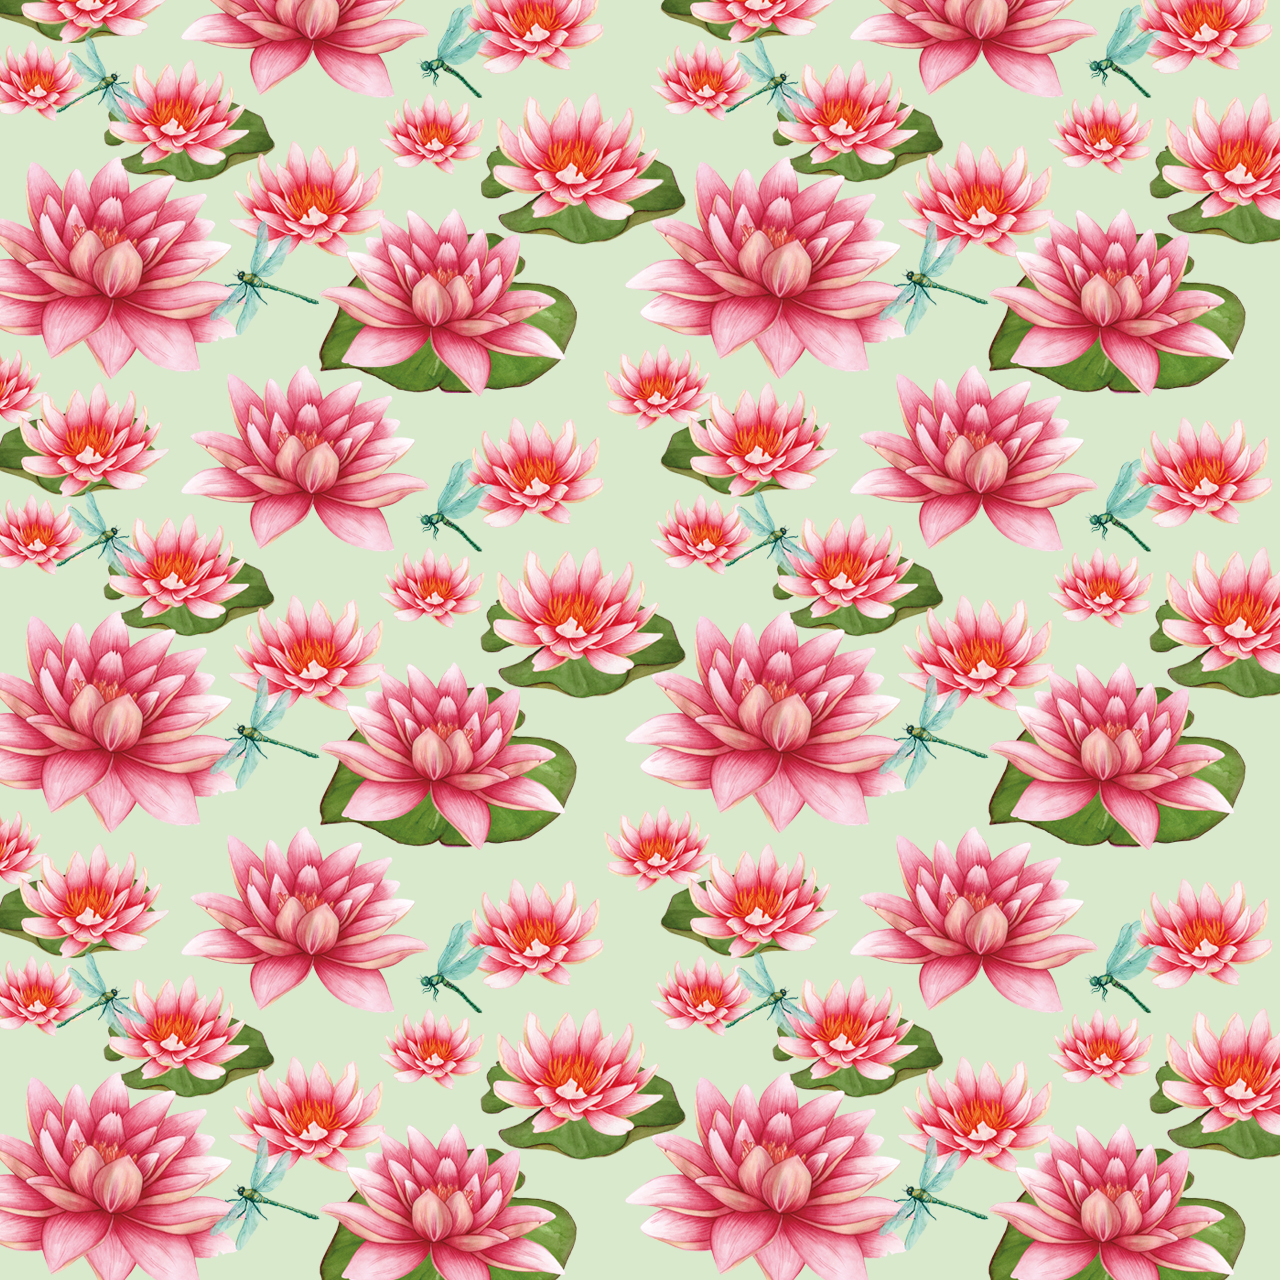 Yume floral patterns pond collection